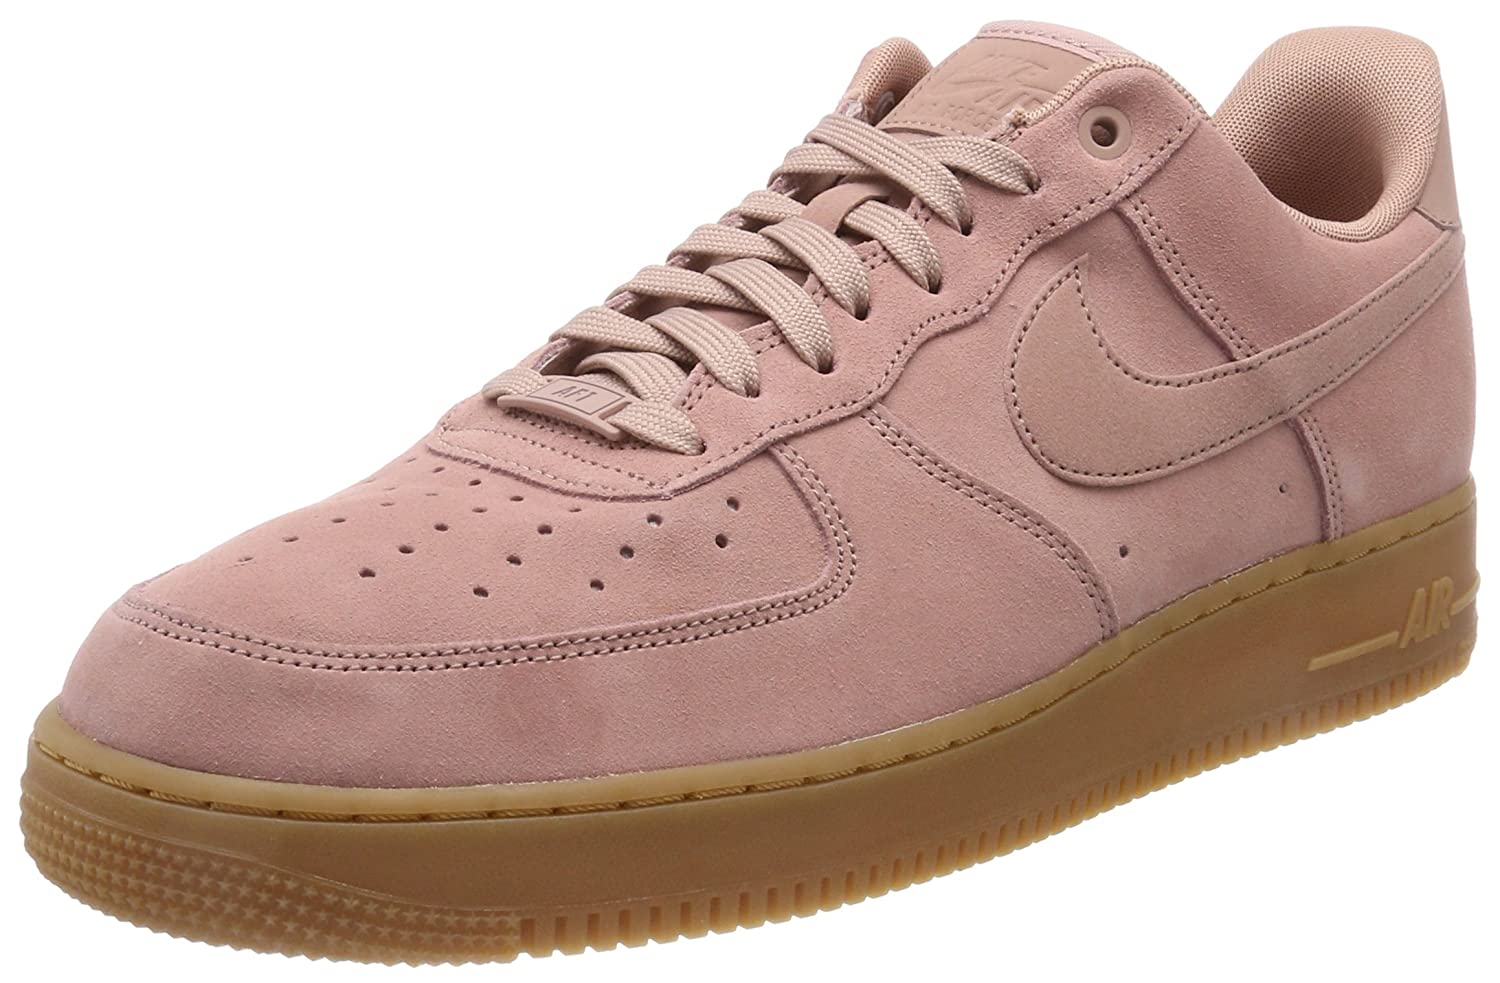 timeless design 08f07 bf334 Amazon.com   Nike Men s Air Force 1 07 LV8 Suede Basketball Shoes (11.5)    Basketball